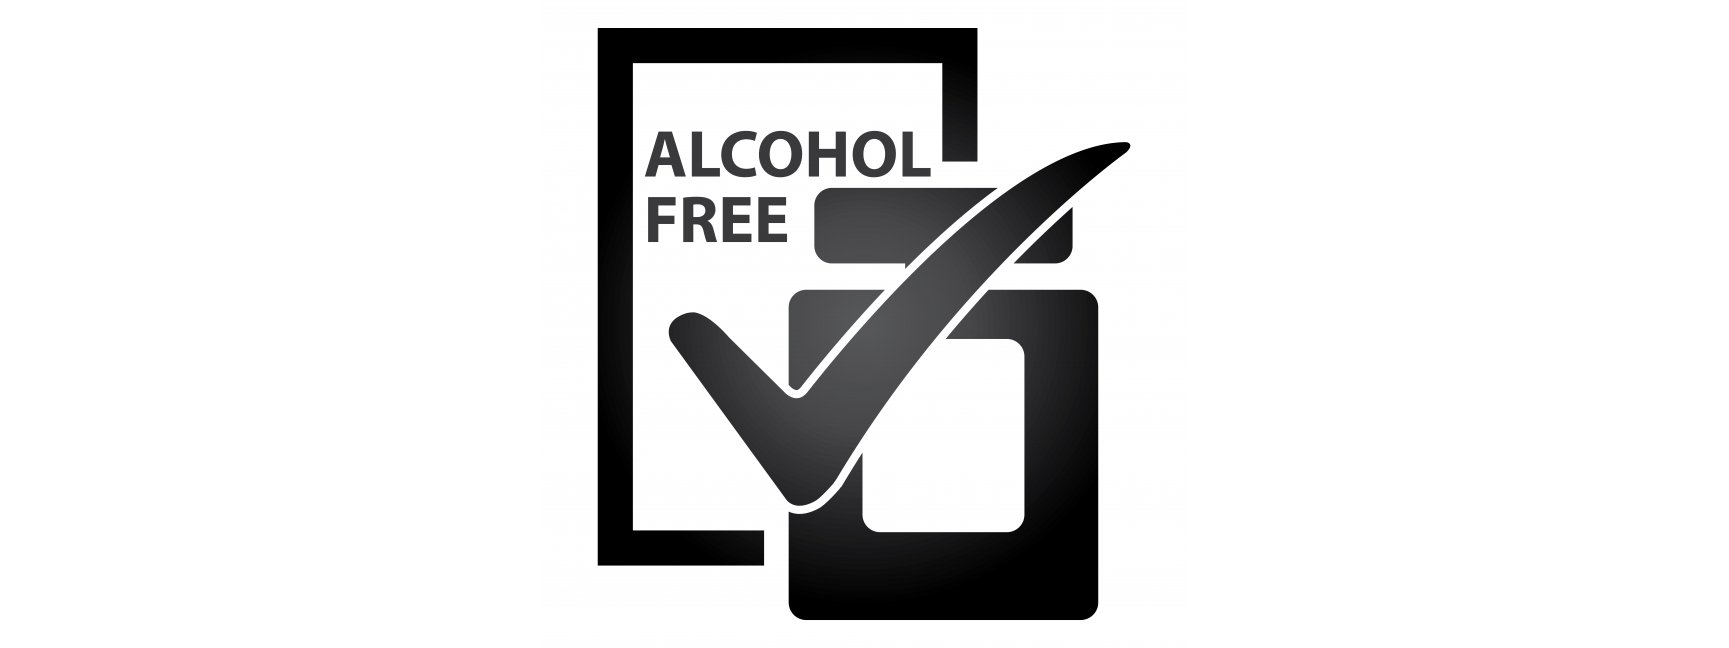 Alcohol Free? Really?